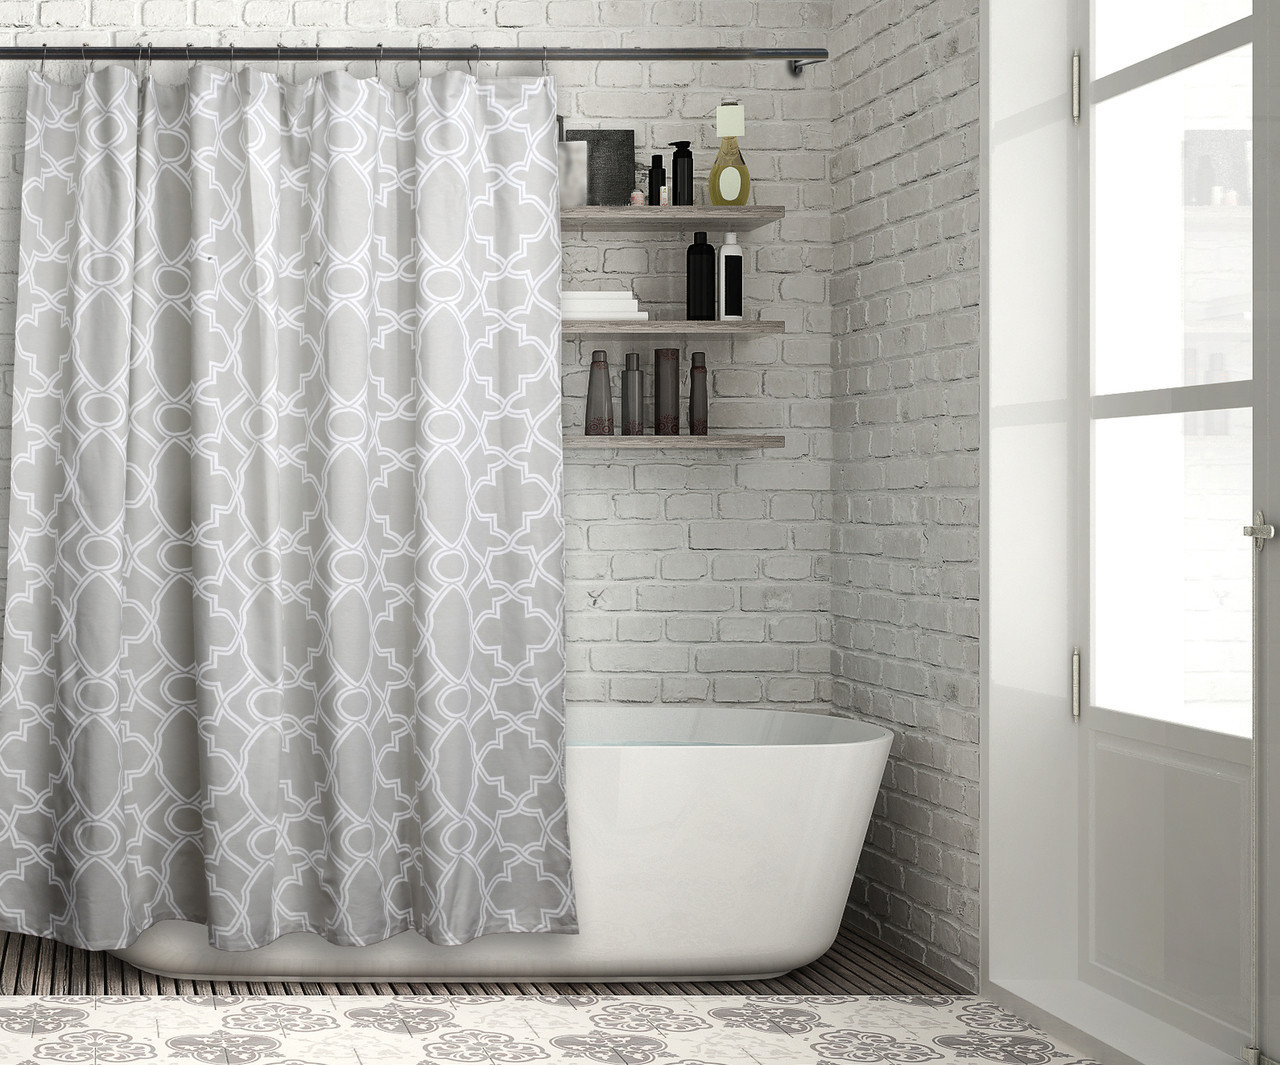 100 Cotton Fabric Shower Curtain Gray Sage With White Moroccan Tile Design 70 In X72 In